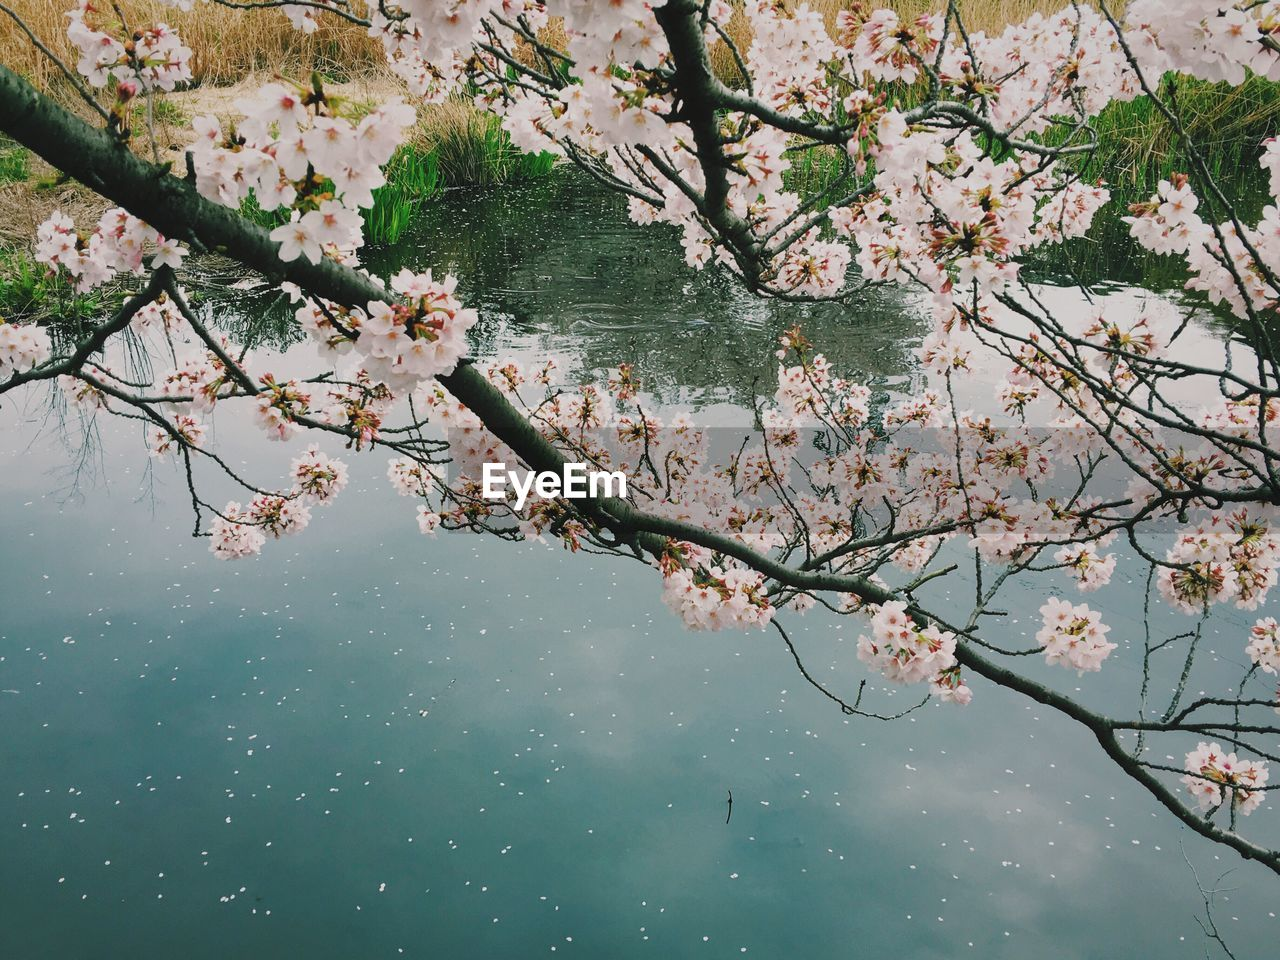 flower, tree, beauty in nature, branch, nature, blossom, growth, water, fragility, cherry tree, lake, apple blossom, springtime, no people, freshness, day, outdoors, twig, waterfront, reflection, scenics, tranquility, foreground, leaf, plant, flower head, close-up, sky